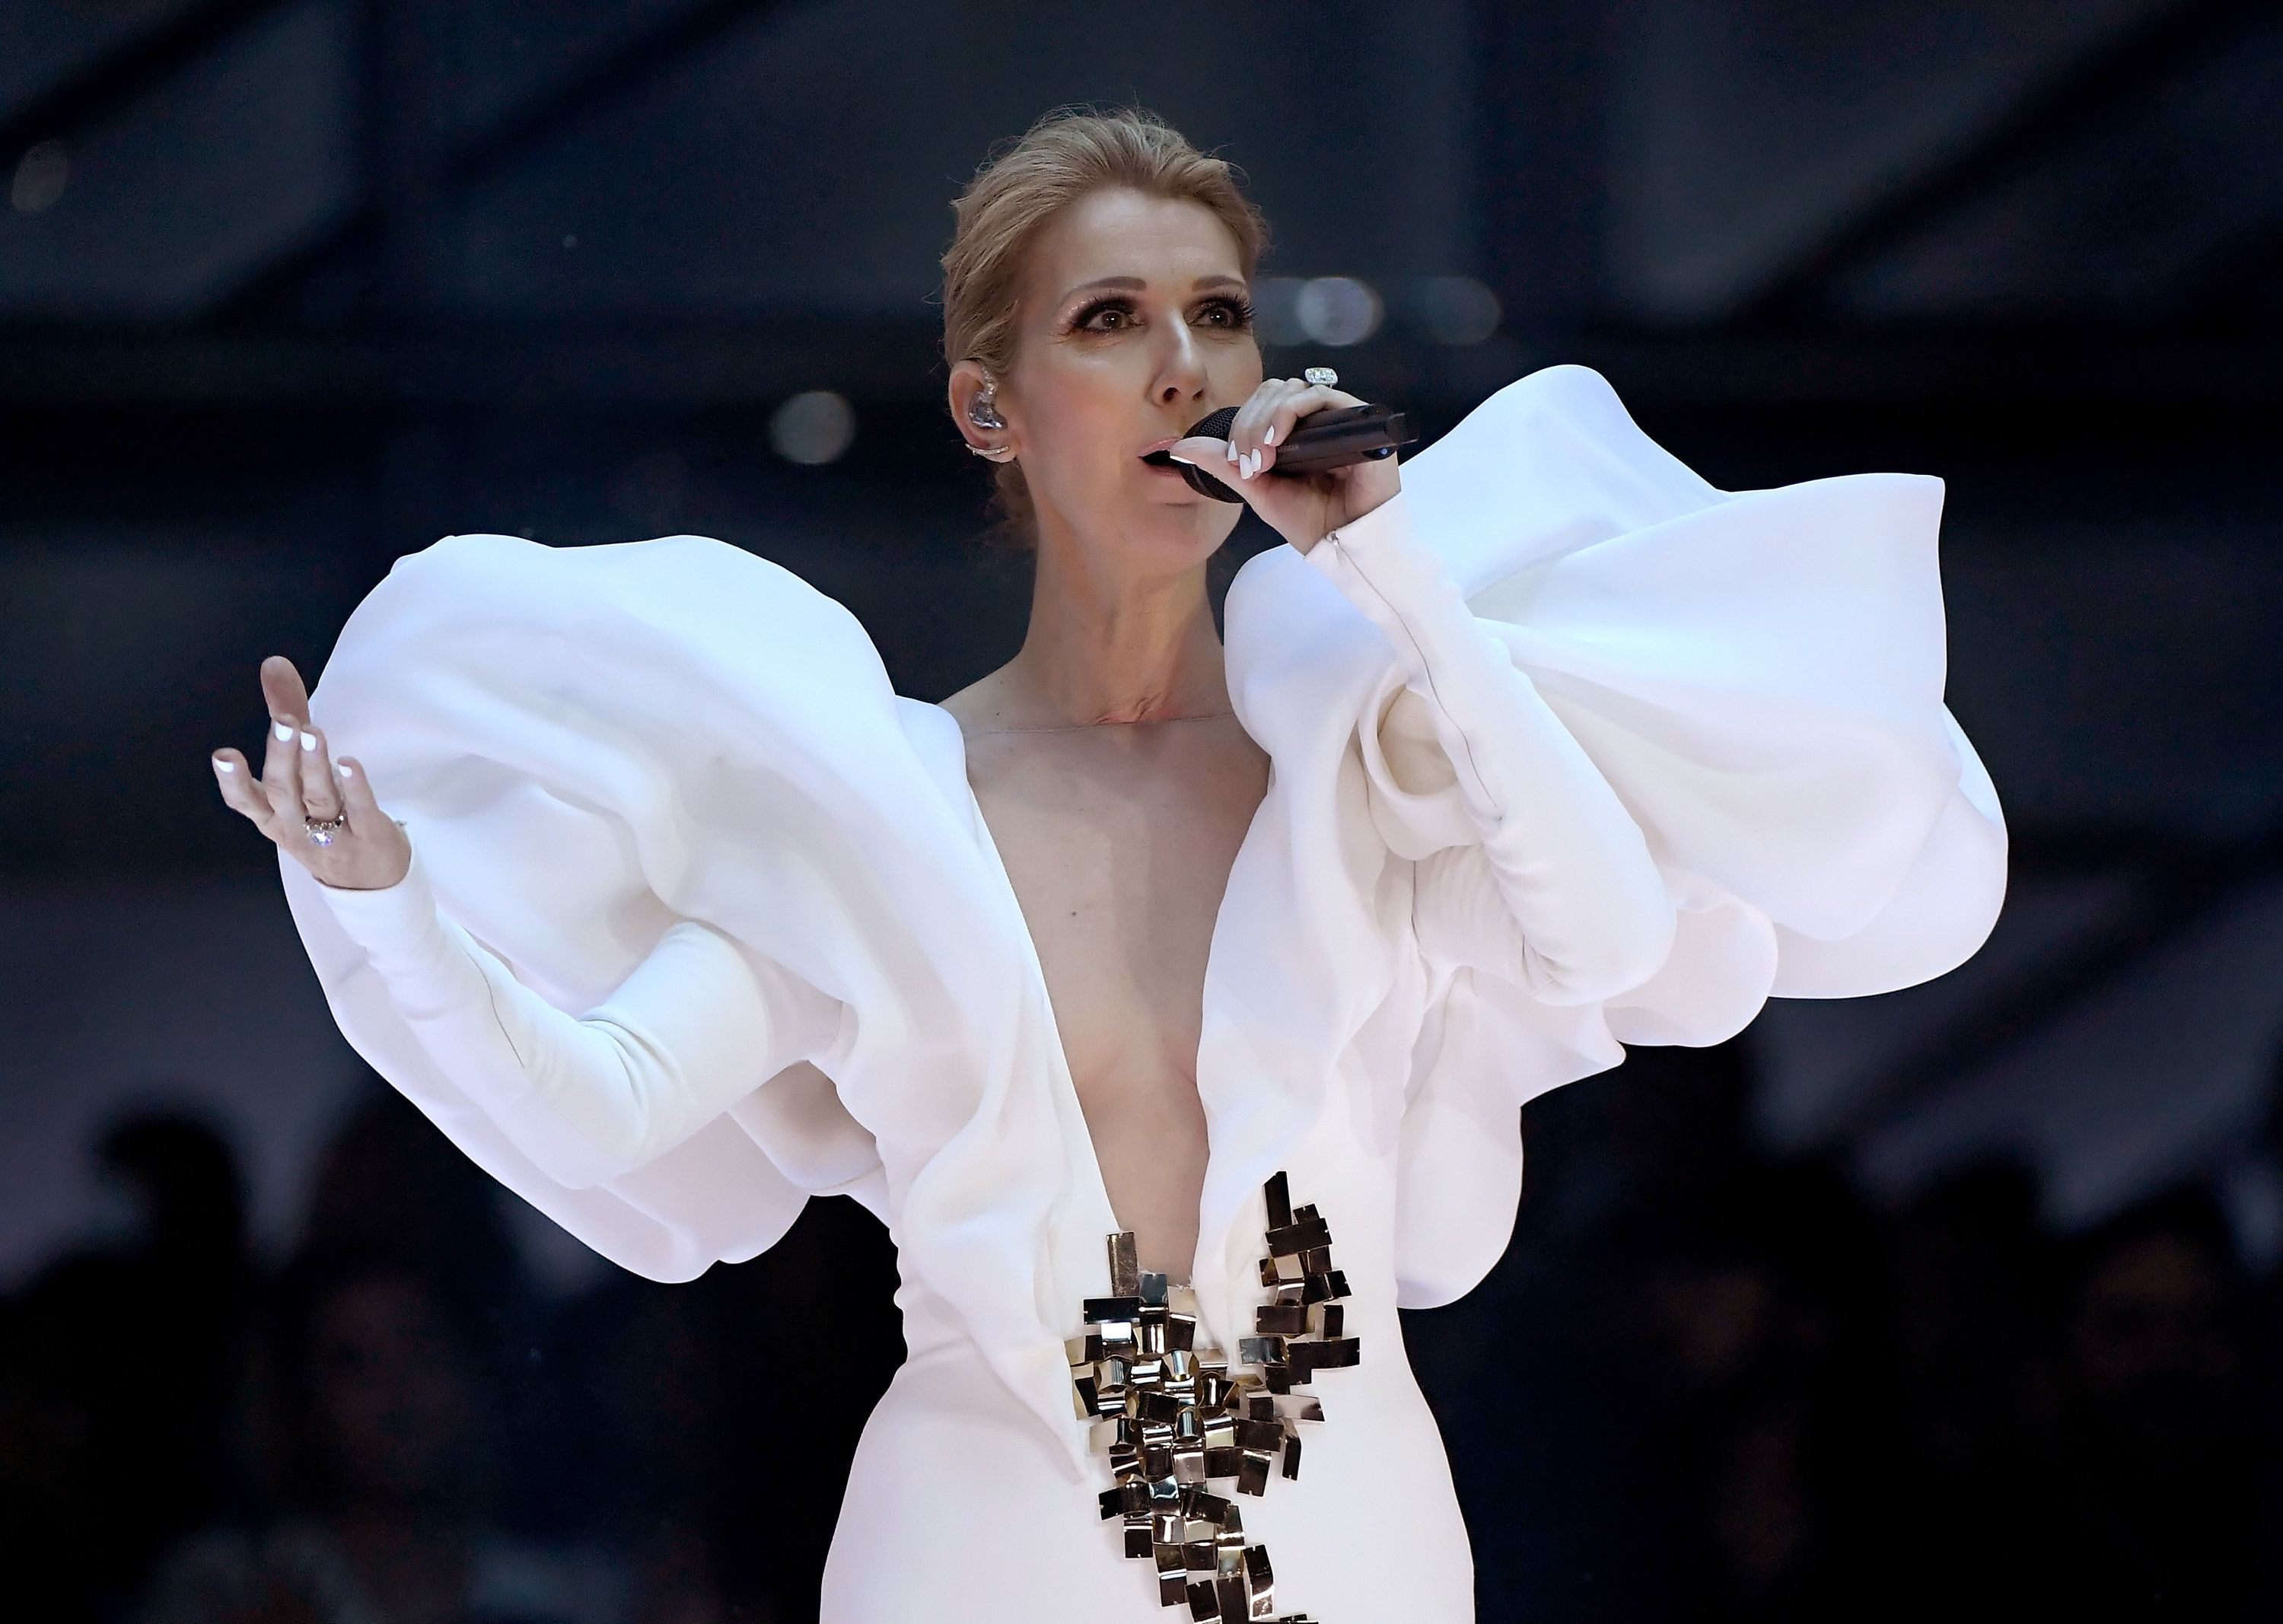 Celine Dion Celebrates 20th Anniversary Of 'My Heart Will Go On' With Billboard Award